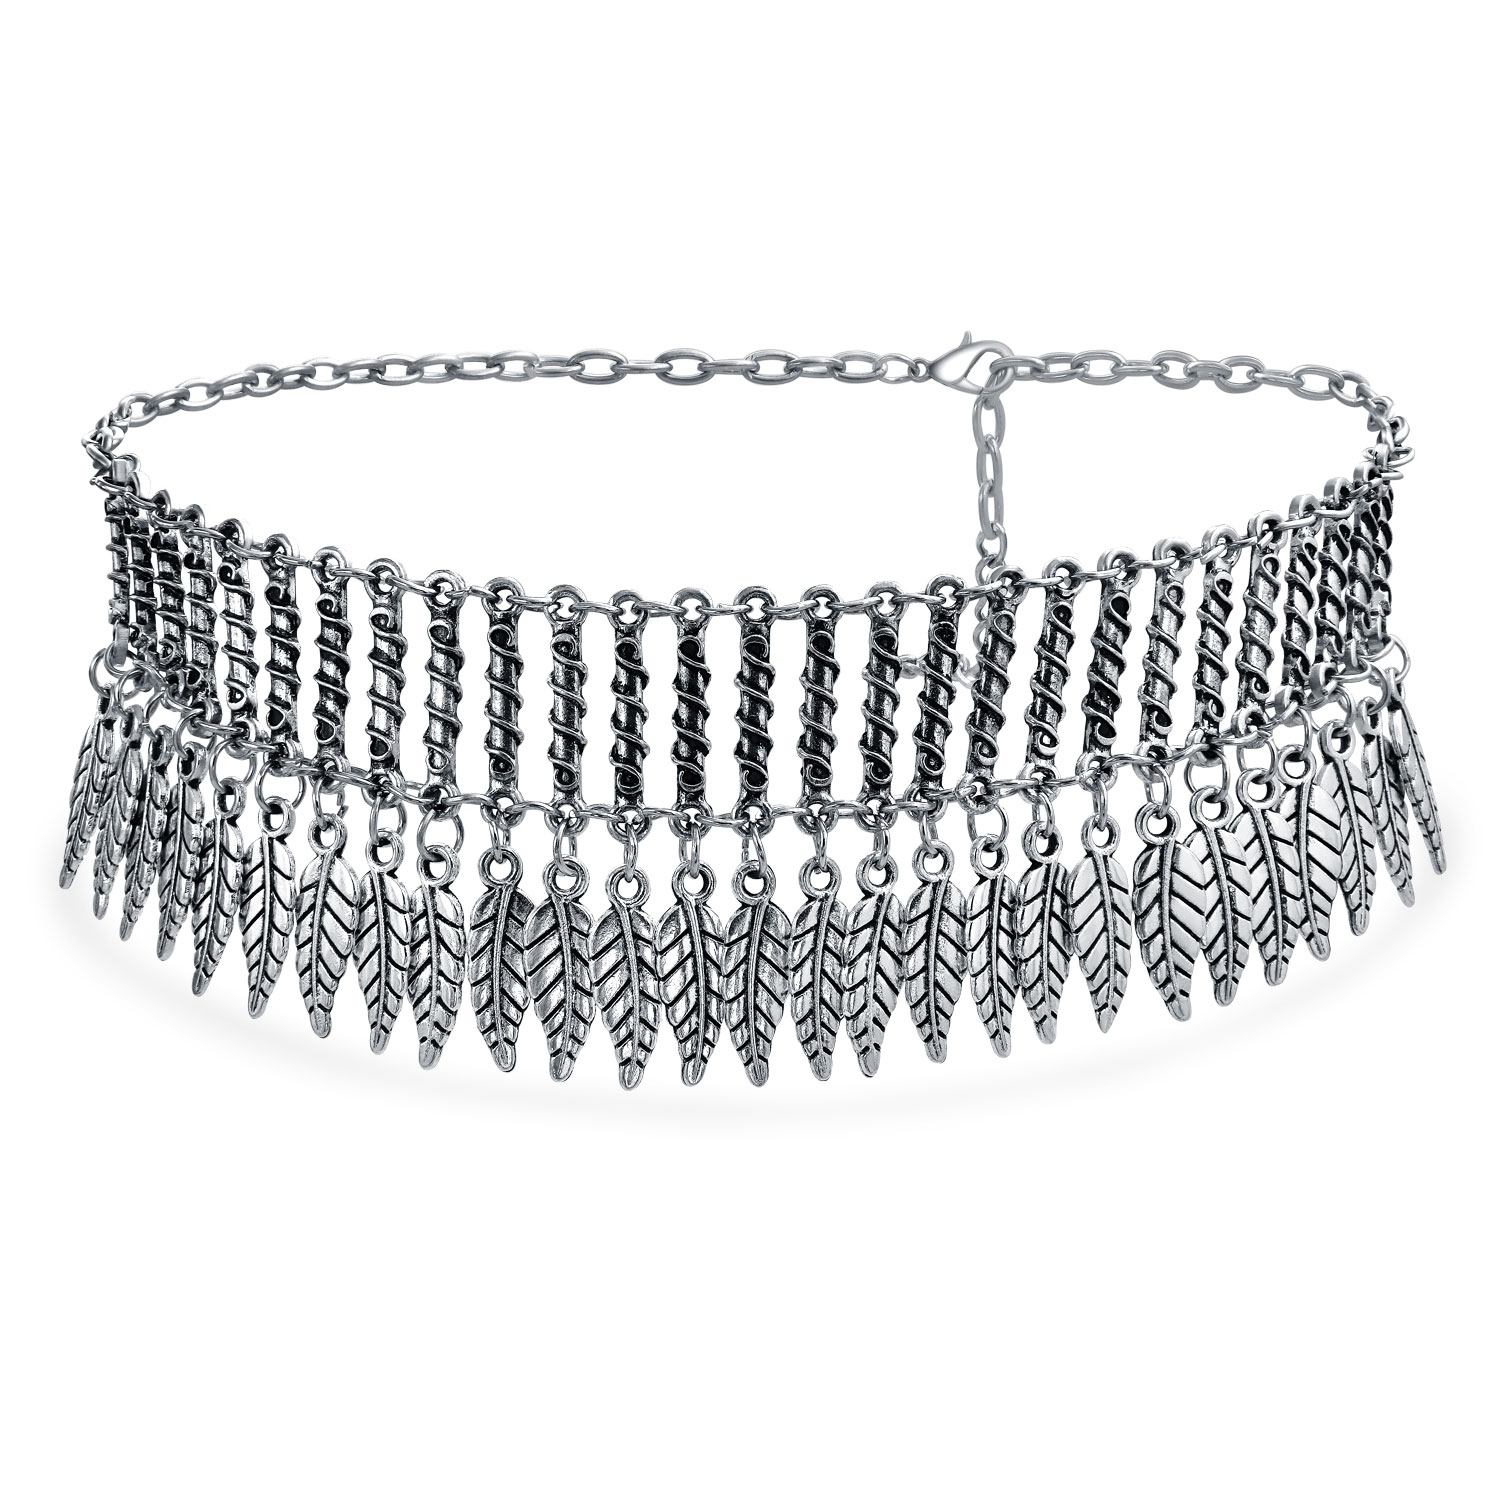 Native American Southwestern Style Dangling Feather Wide Choker Silver Tone Metal Necklace For Women Adjustable